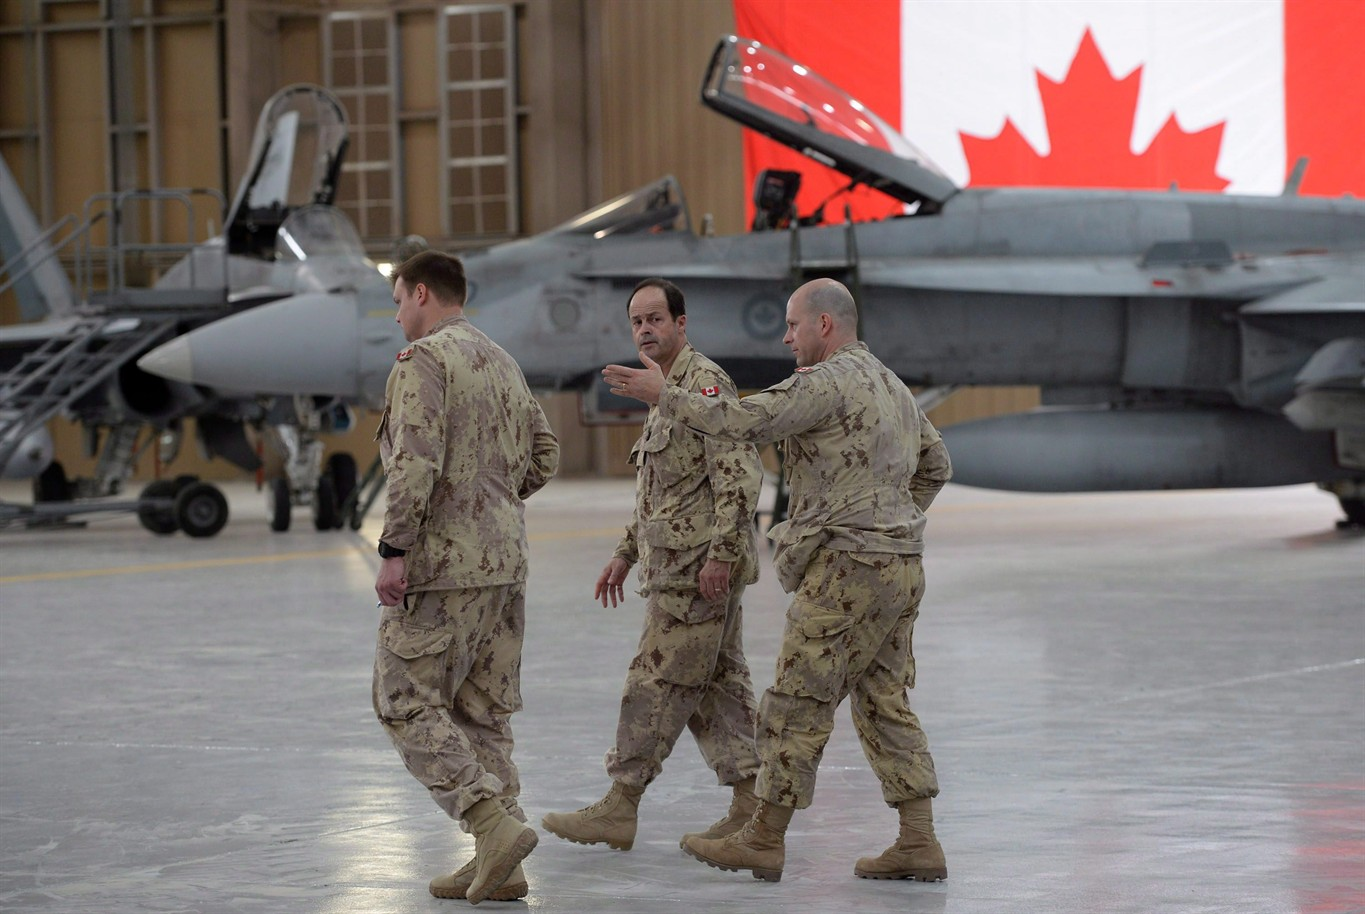 Canada could buy Australian fighter jets